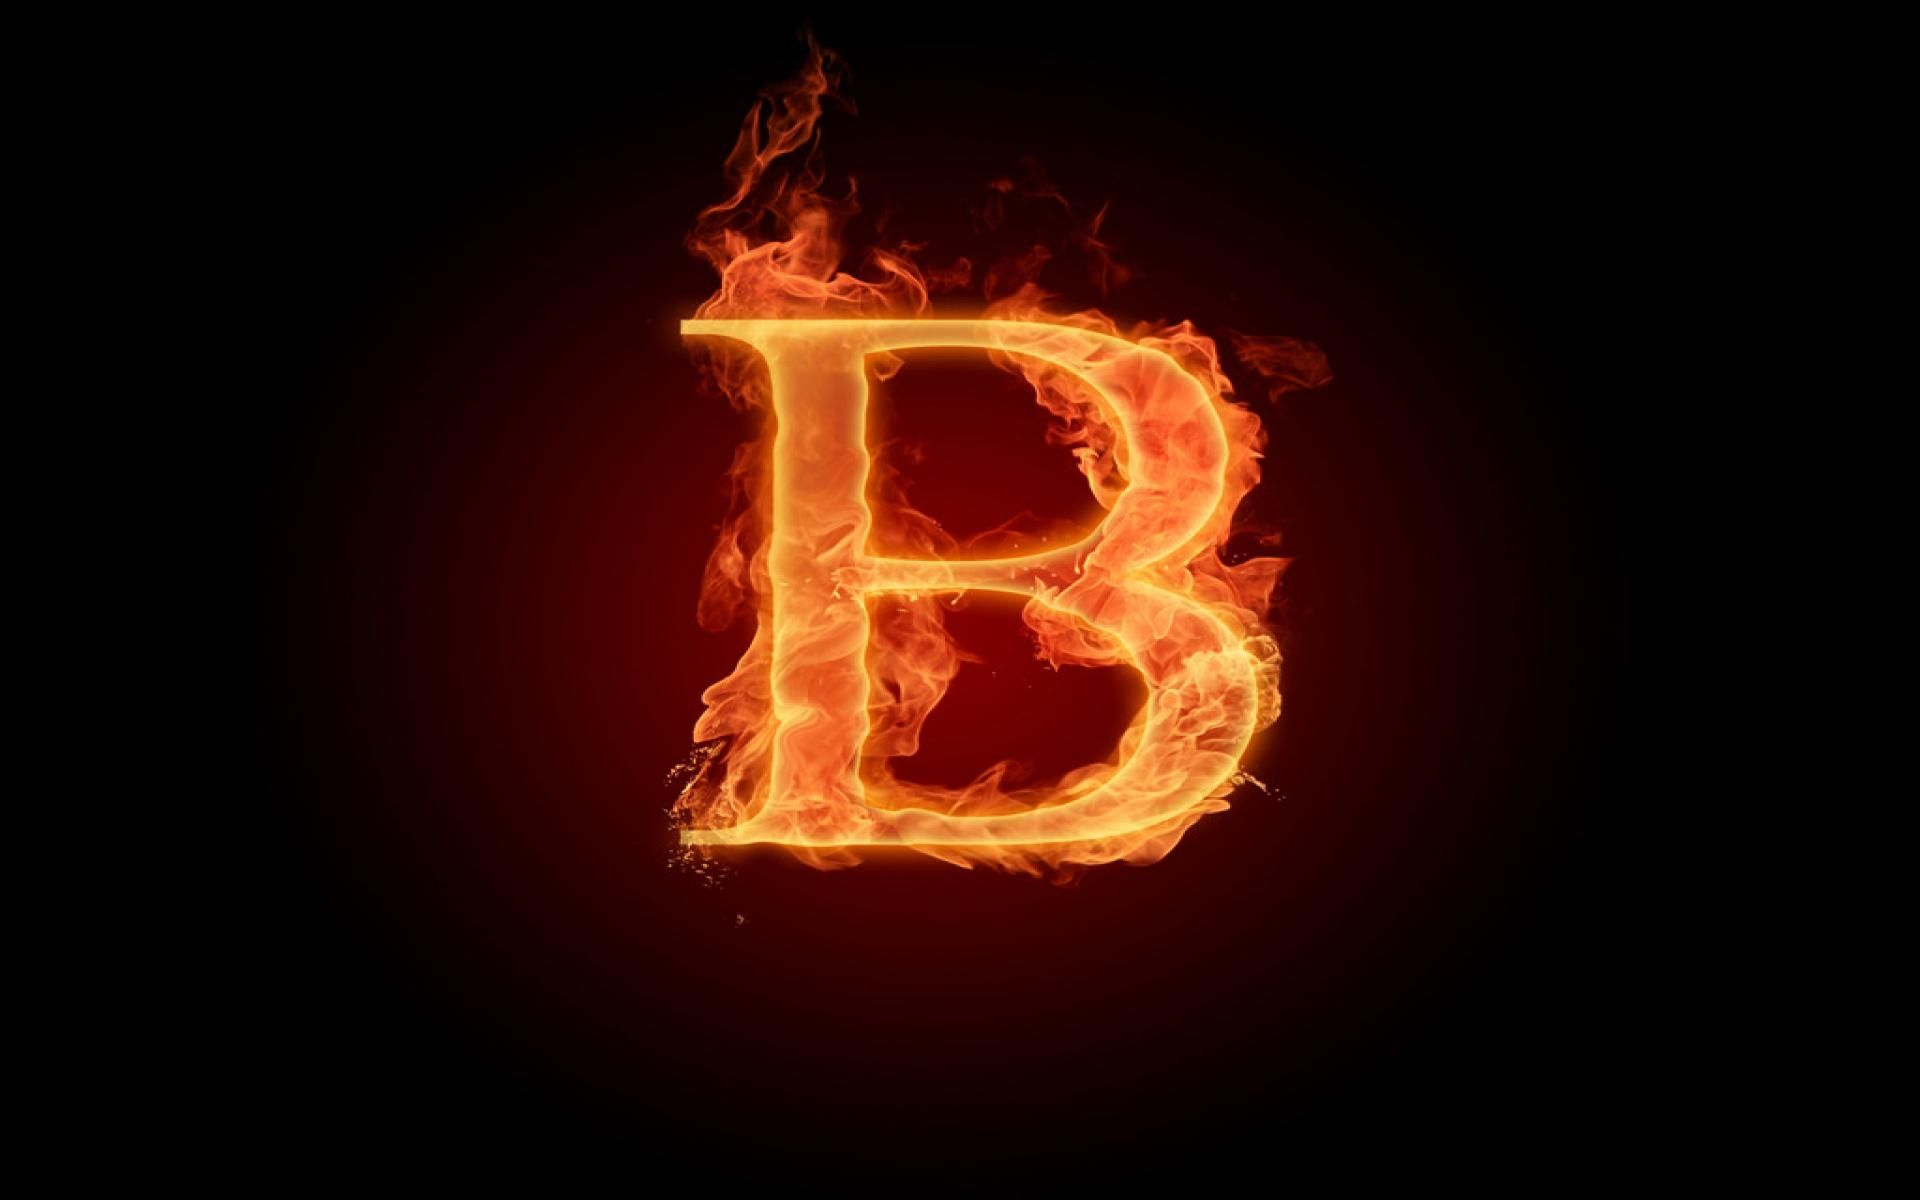 Burning Love Hd Wallpapers: Pin By Jacque Diede On Letters/Alphabet Photography: ABC